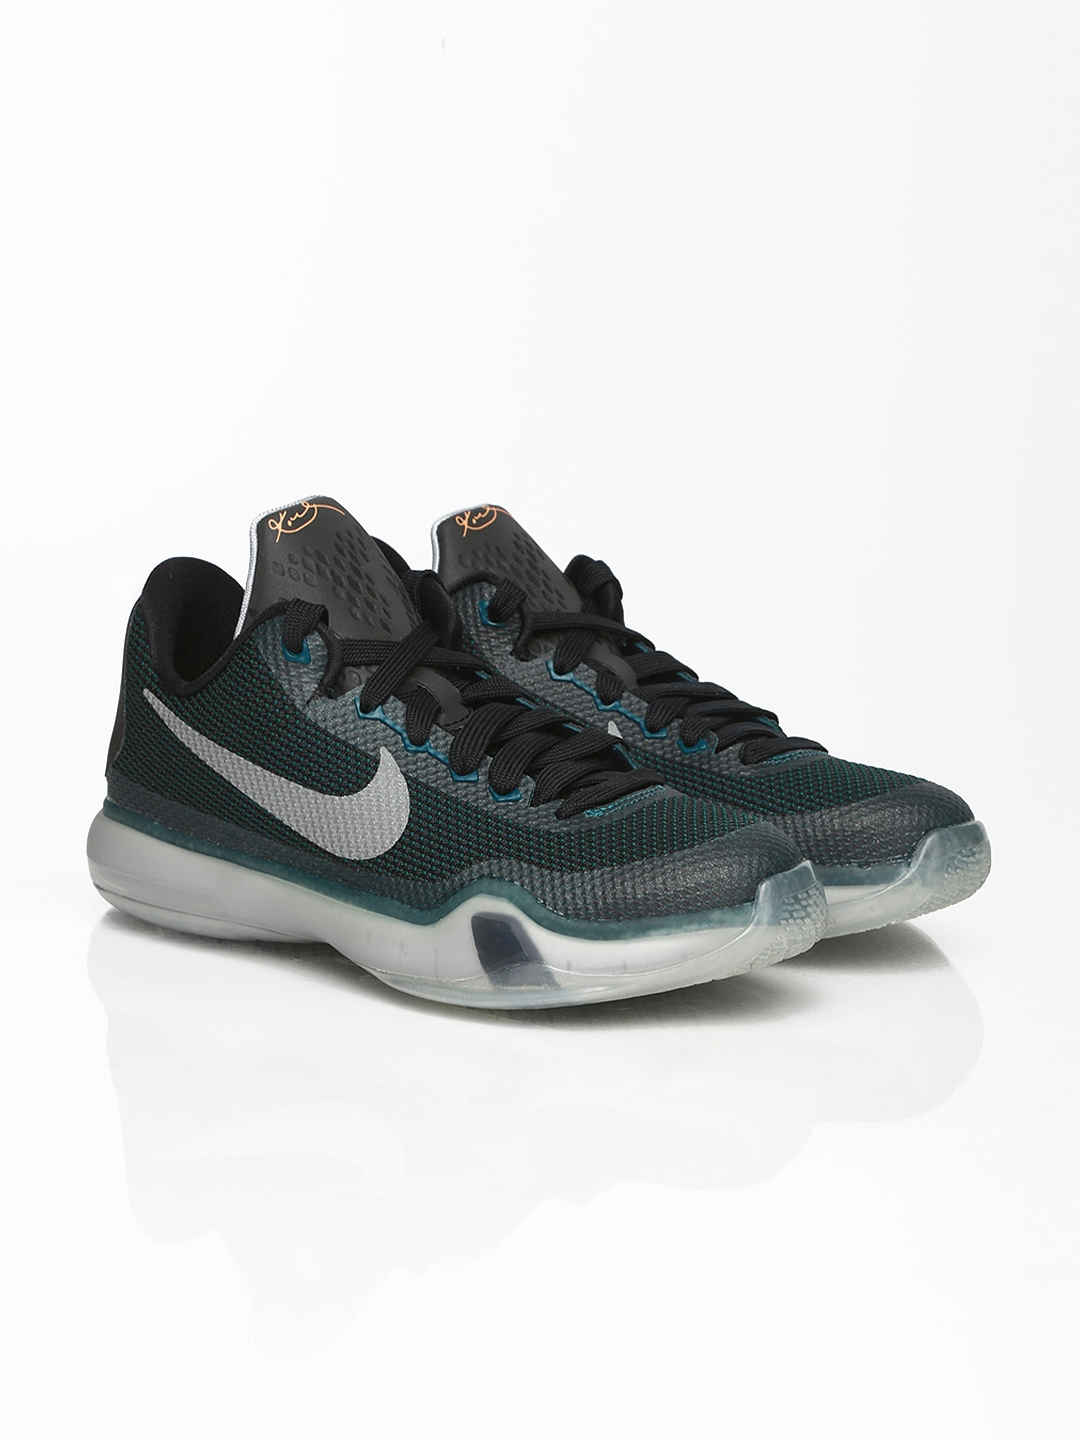 low priced 2f58c 89761 spain nike air max 90 hyperfuse camo blue turquoise white b12cf 629a5   cheap the exposed air unit of the midsole is surrounded by a turquoise  panel and sits